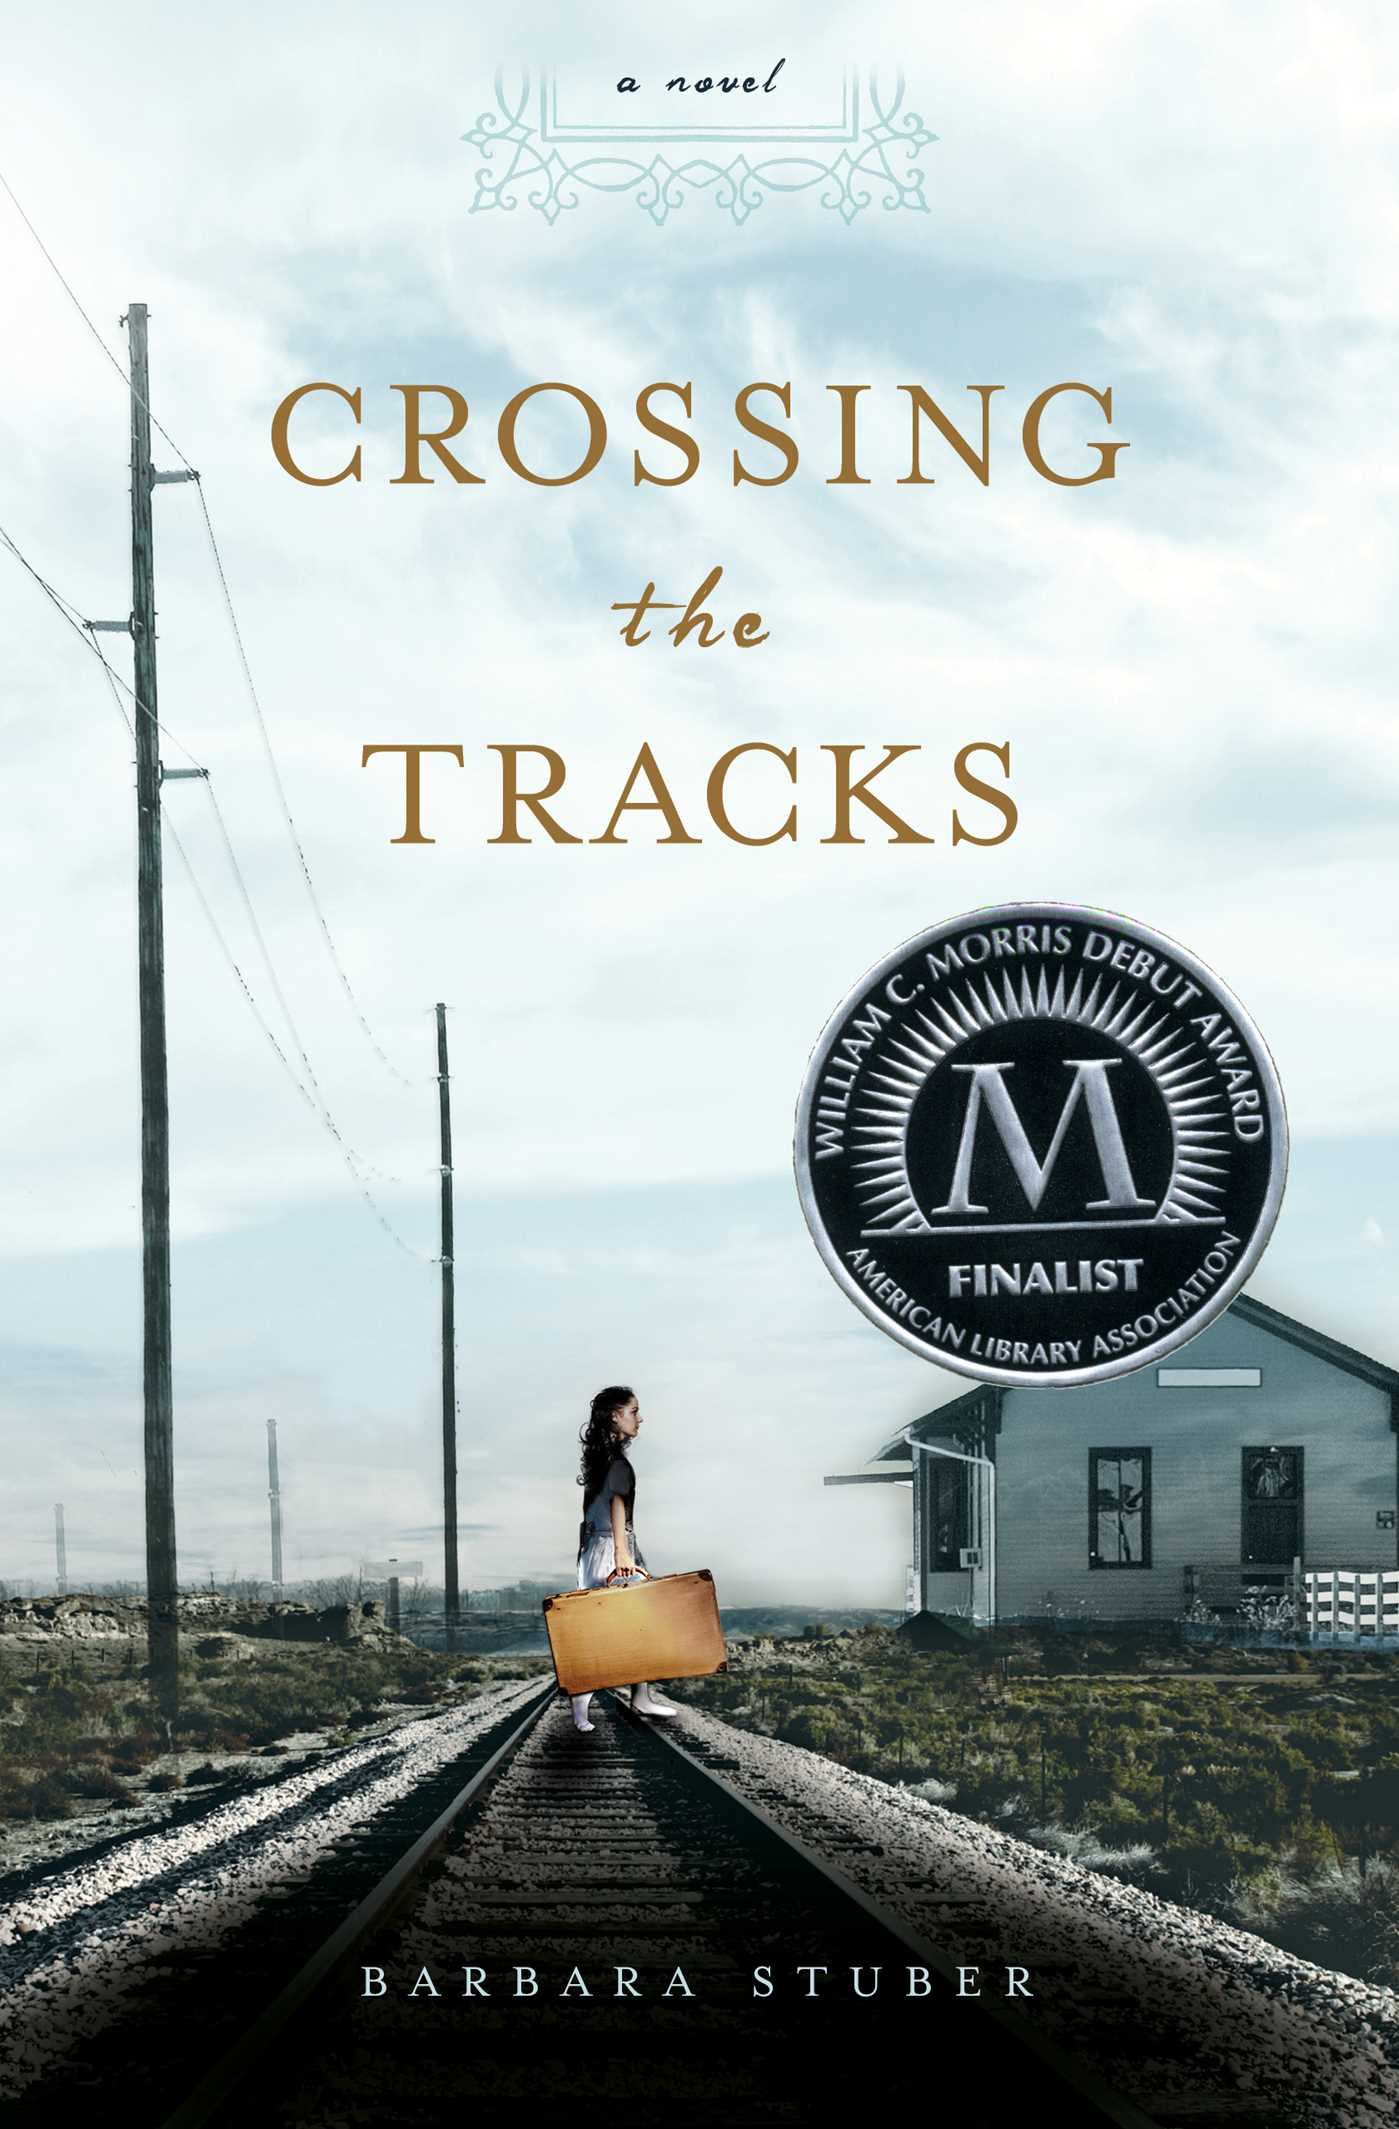 Crossing the tracks 9781416997054 hr